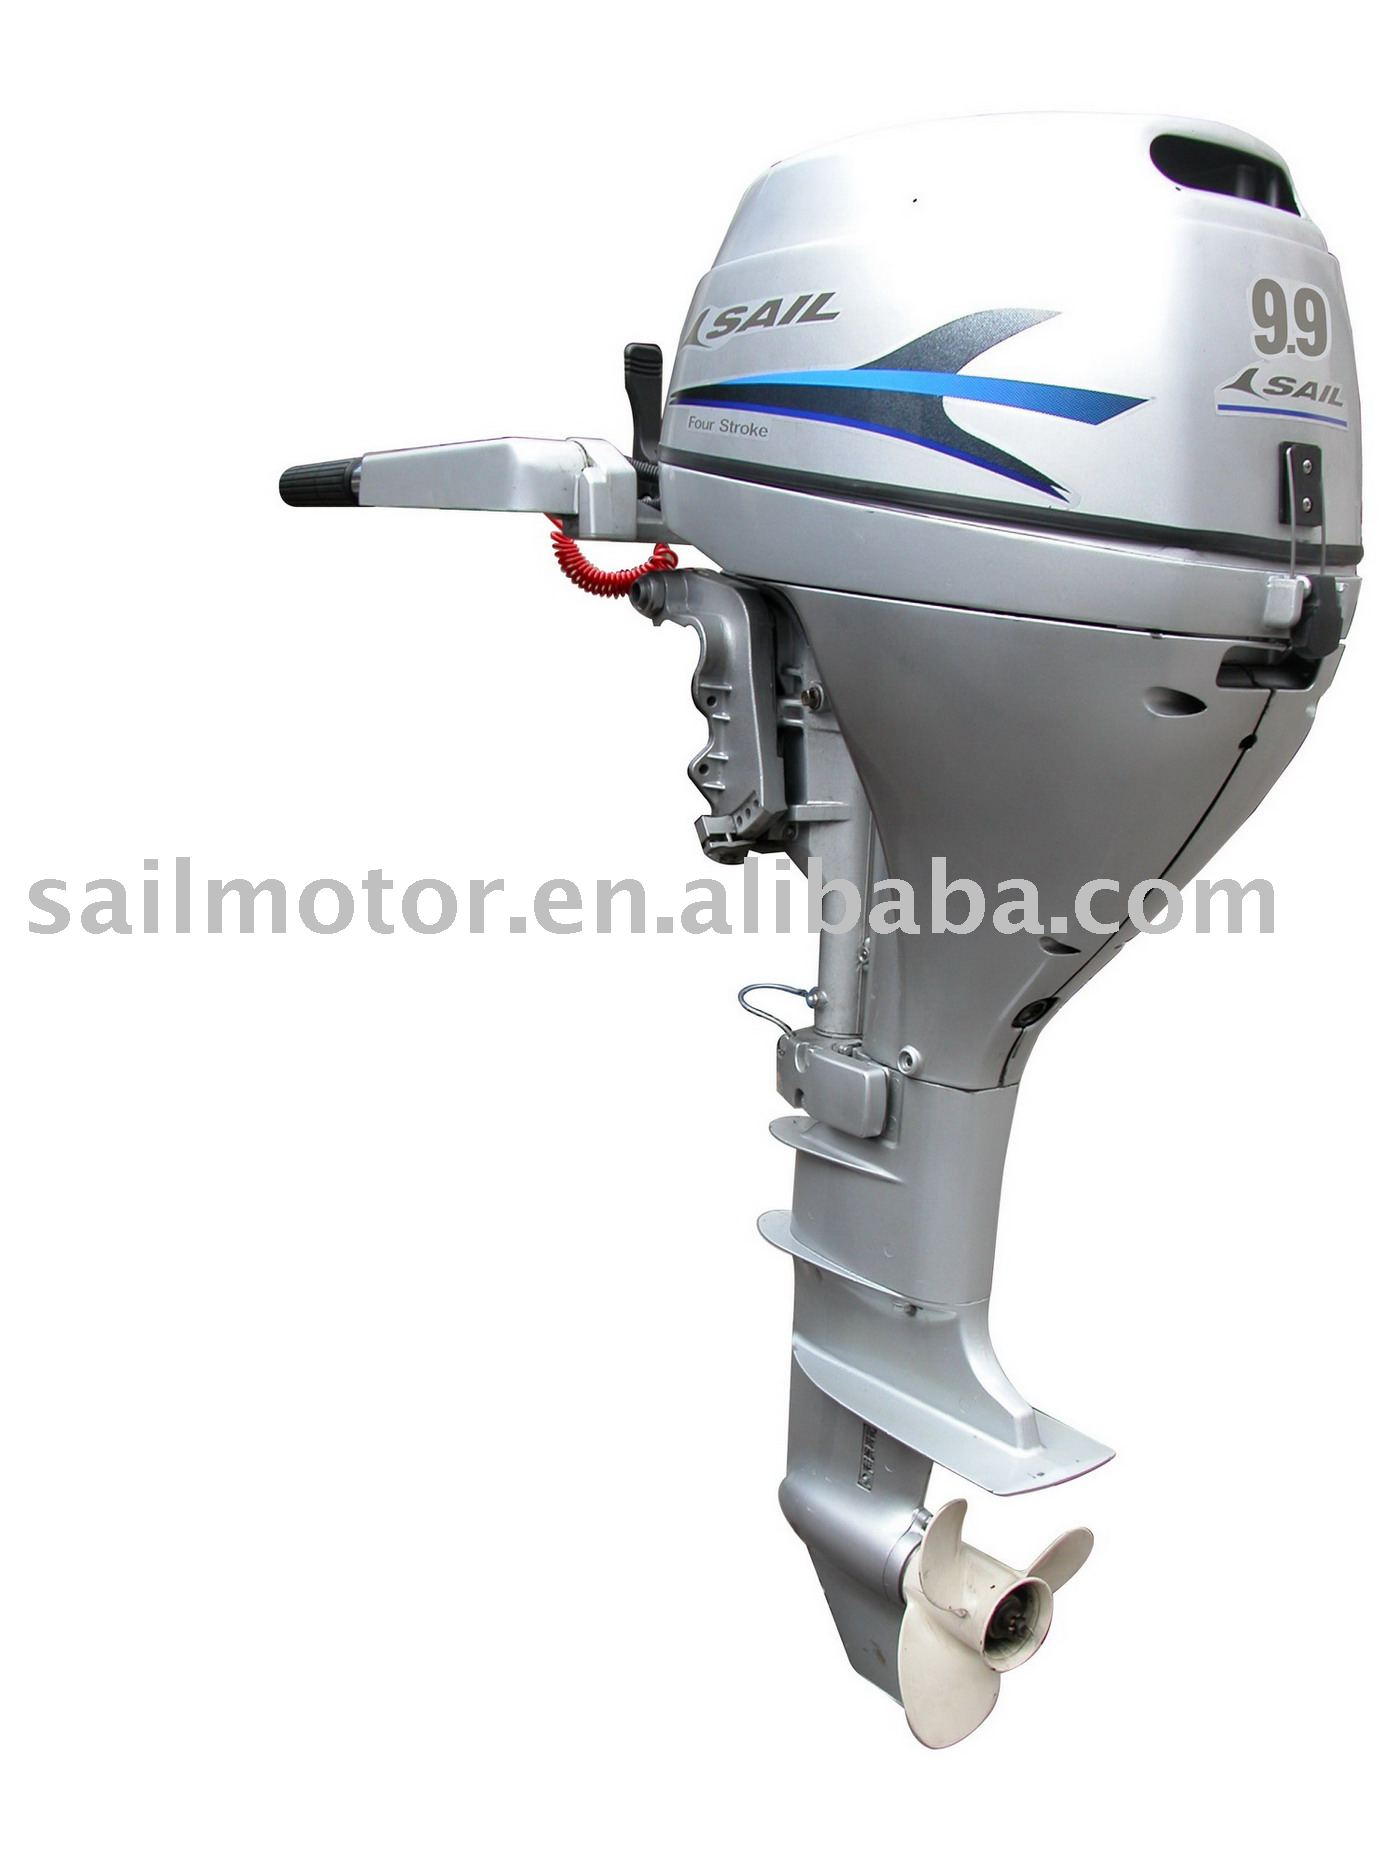 4-stroke 9 9hp Outboard Motor With Electric Start - Sail Manufacturer - Buy  Outboard Motor,Outboard Engine,Motor Product on Alibaba com